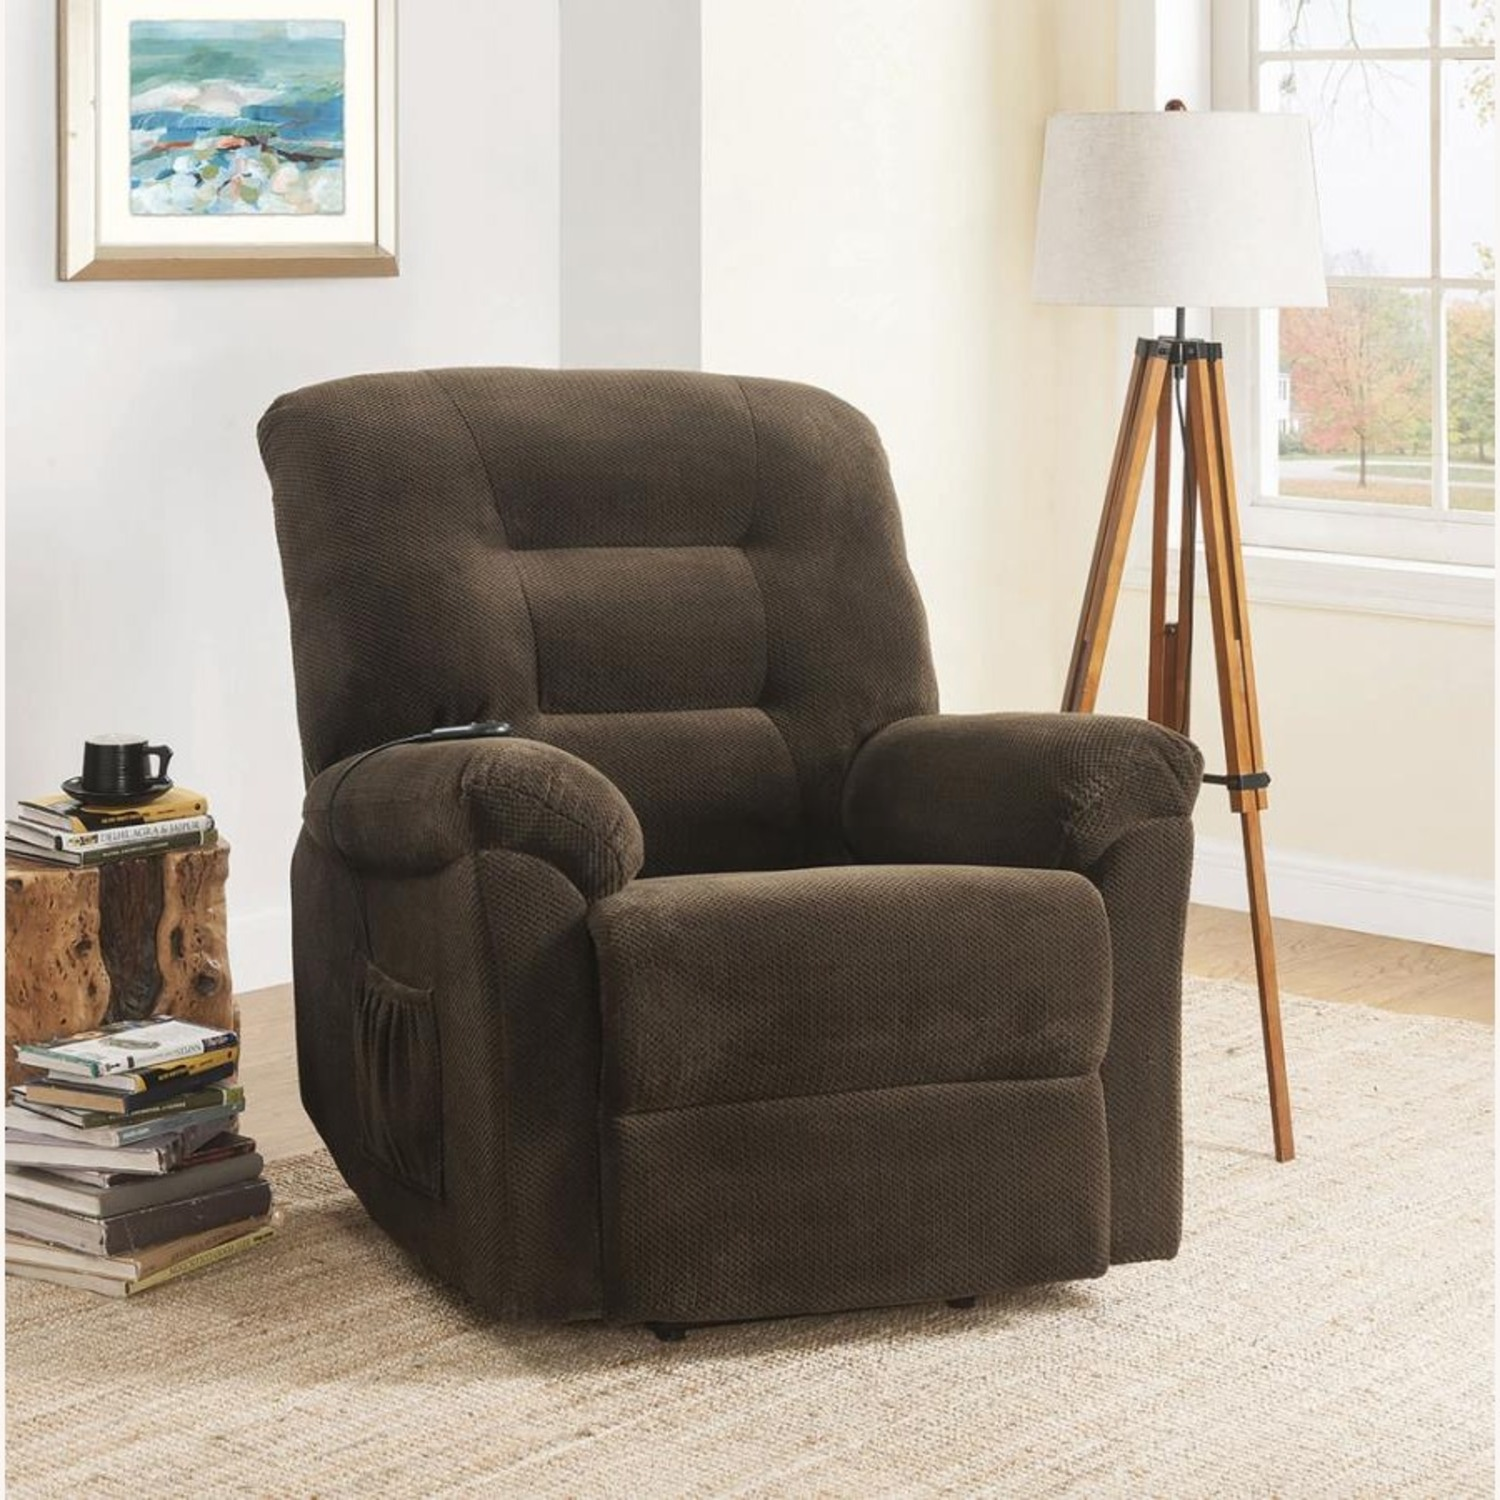 Power Lift Recliner In Chocolate Chenille Fabric - image-8